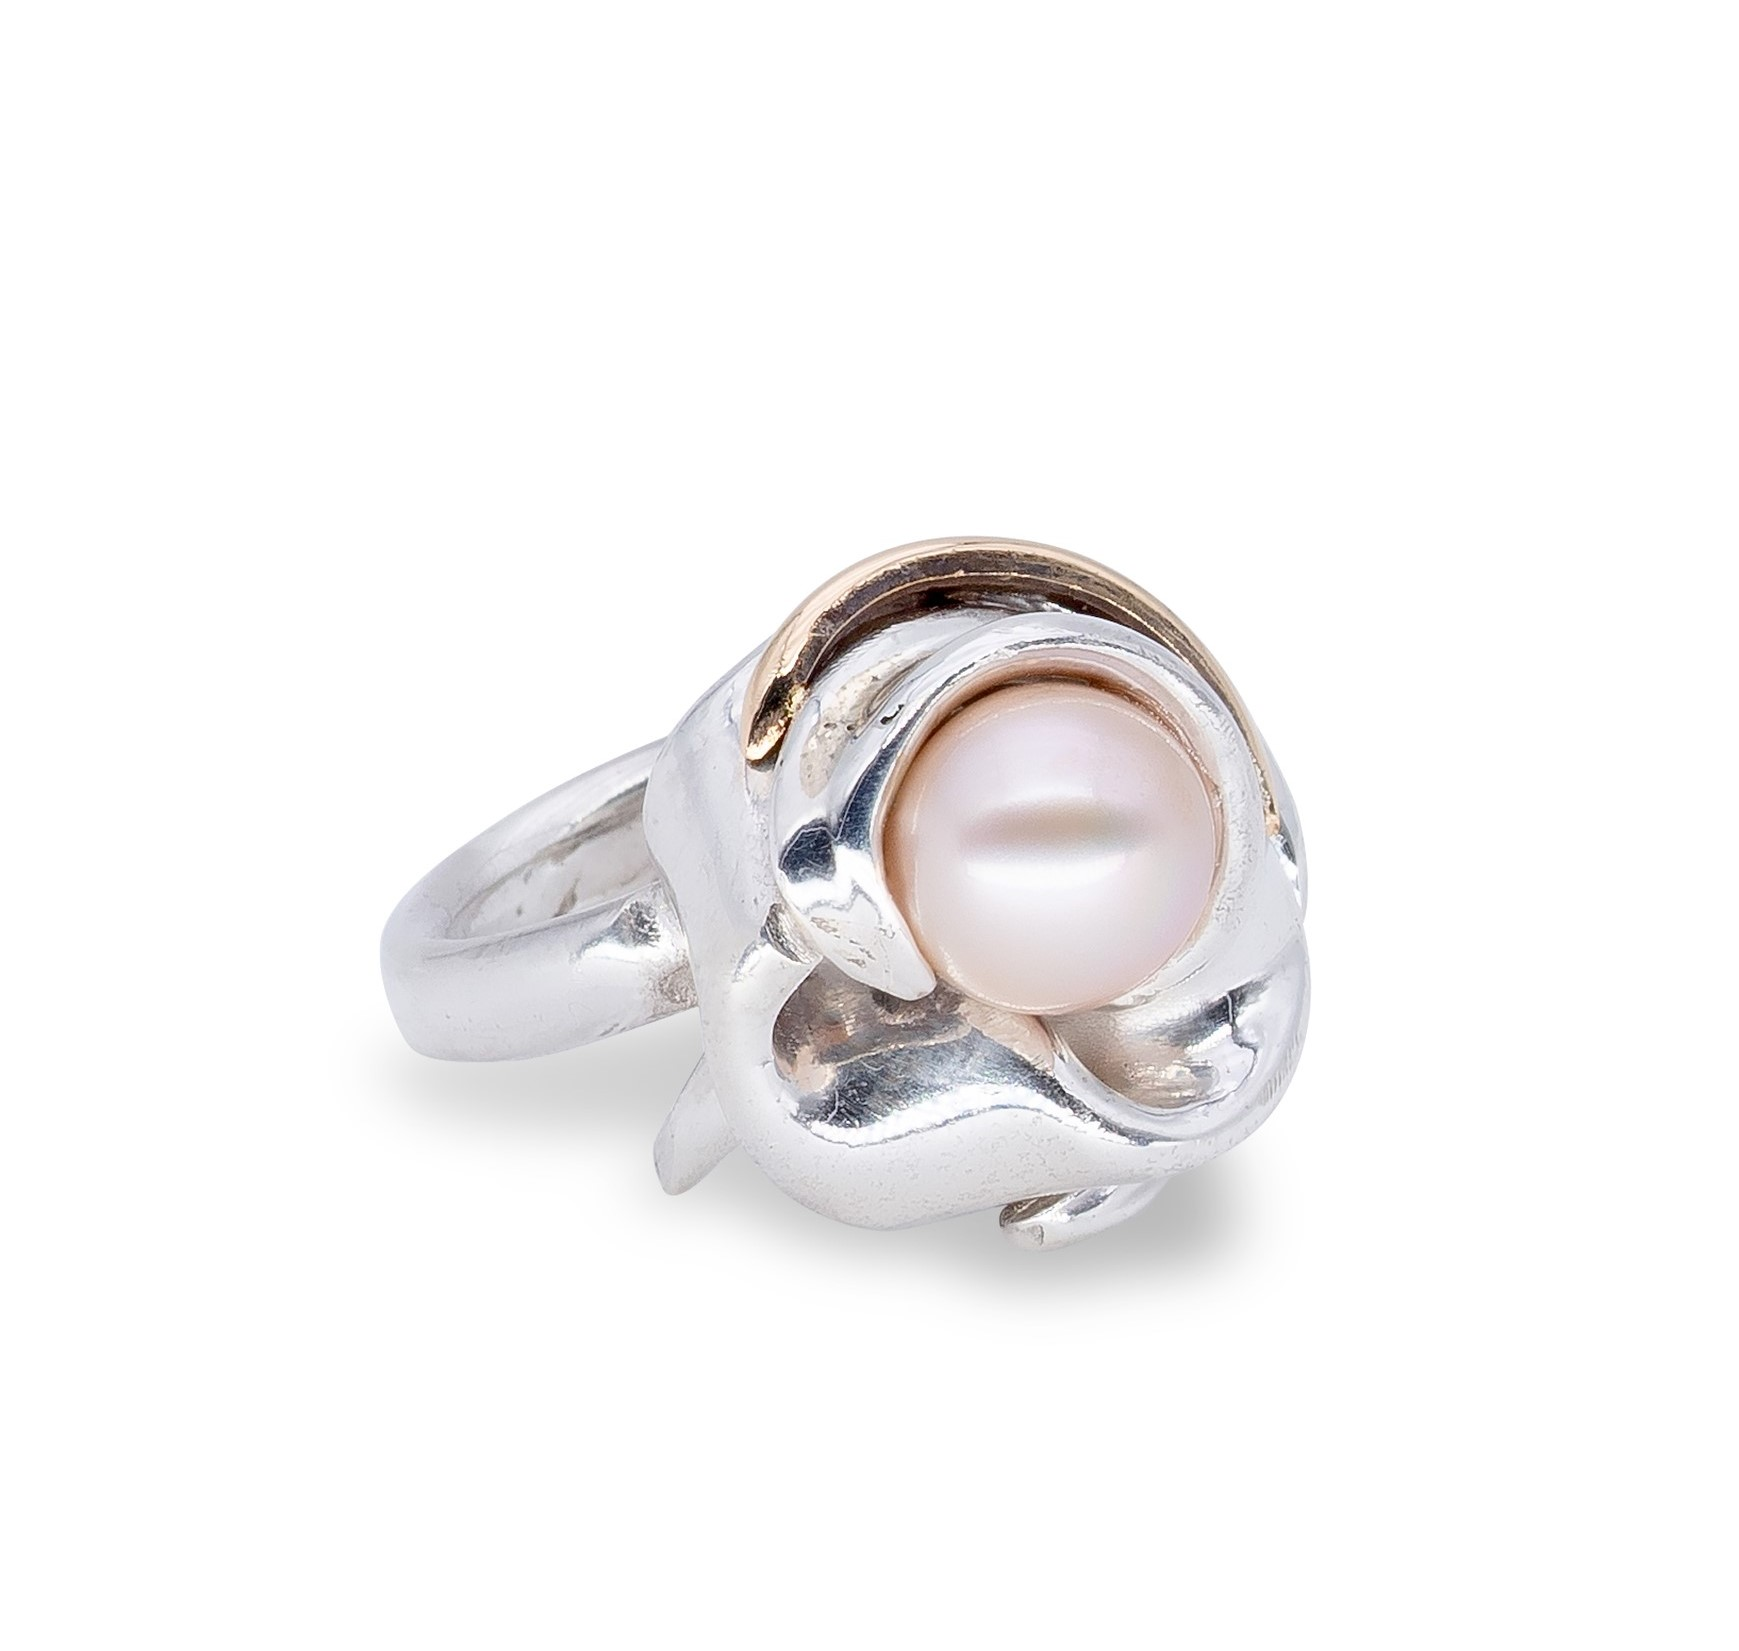 d'Avossa Ring in Silver with Yellow Gold Detail and Freshwater Pearl